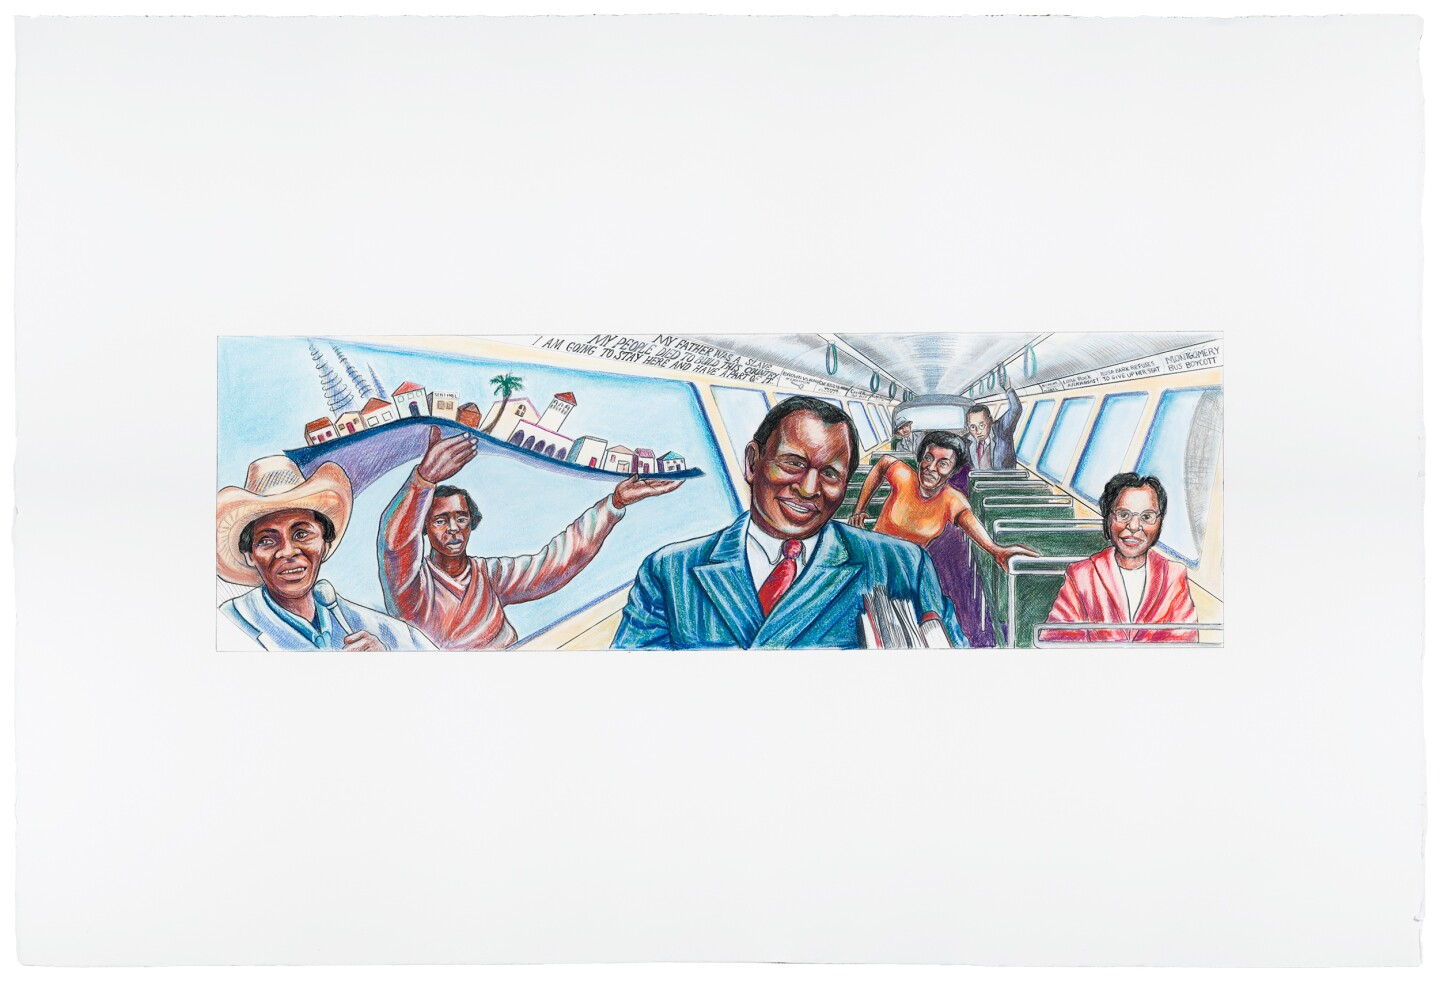 "The final coloration of Judy Baca's ""The Great Wall of Los Angeles 1950: Forebearers of Civil Rights"" depicts prominent civil rights leaders and activists like Paul Robeson, Rosa Parks, Gwendolyn Brooks, Ralph Bunche and Martin Luther King, Jr rising from their bus seats."